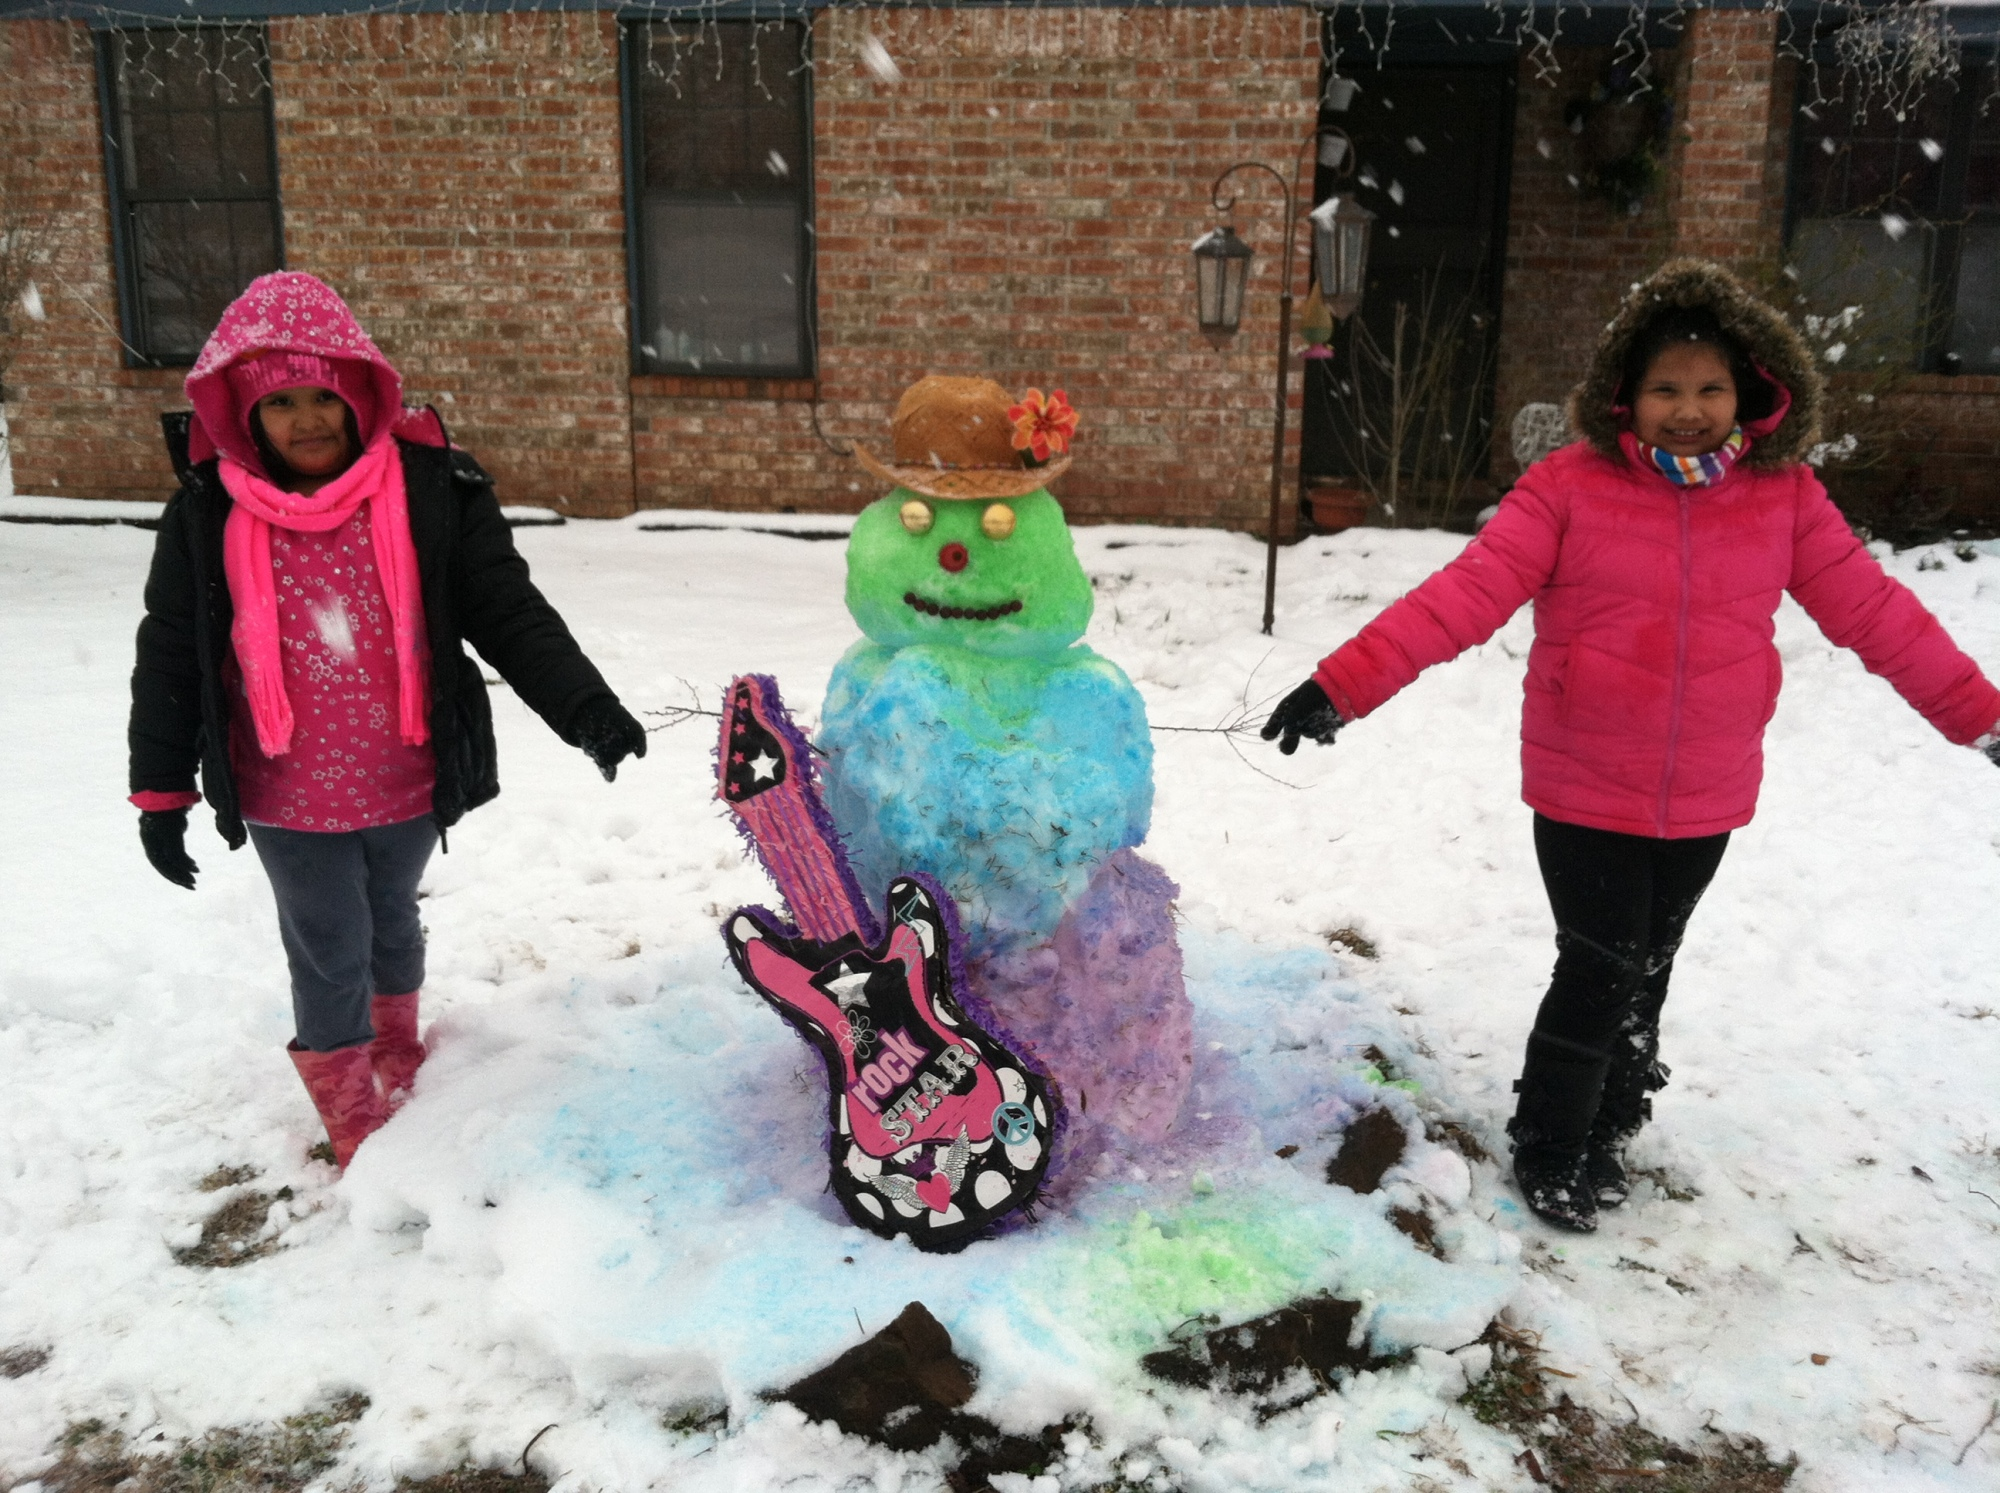 Maira & Yasmine 7 year old cousins from Sallisaw wanted to make a colorful snowman, this is what we came up with, they had so much fun making it.